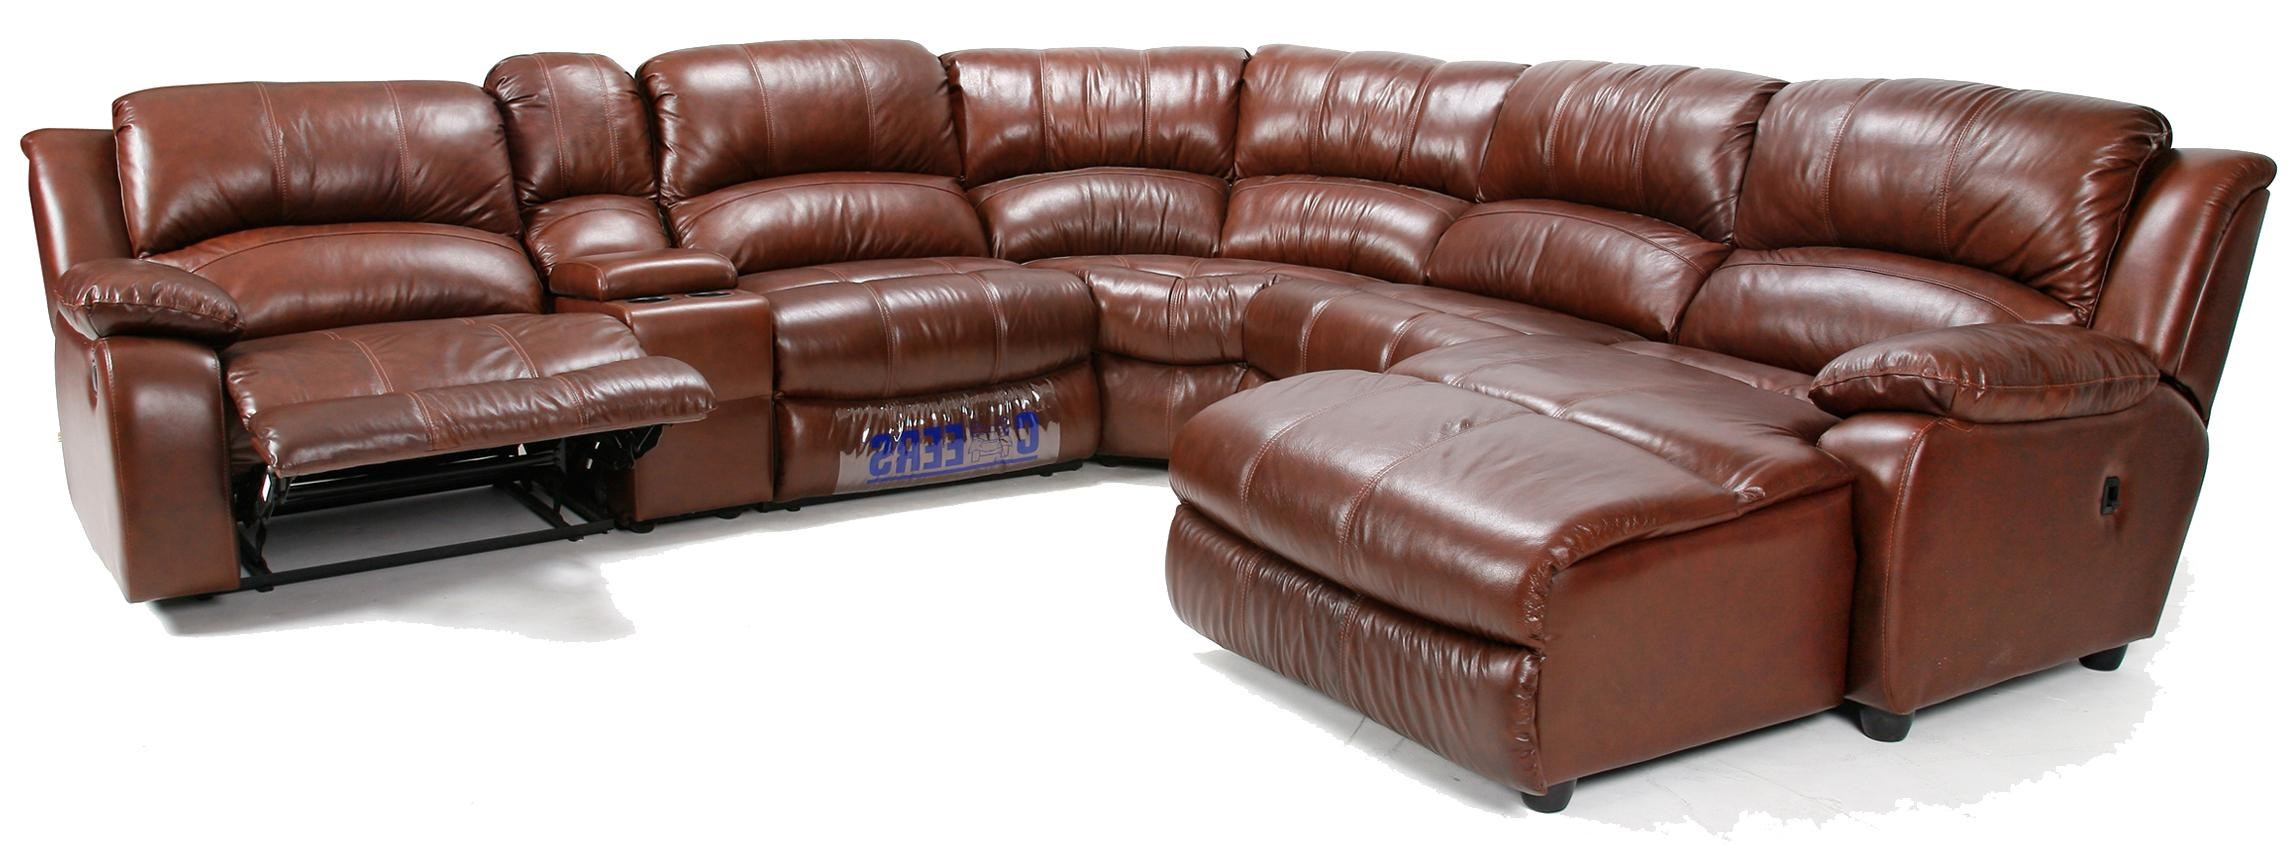 sectional sofa dallas fort worth stellar round lounge cheers u8582 reclining with chaise and console